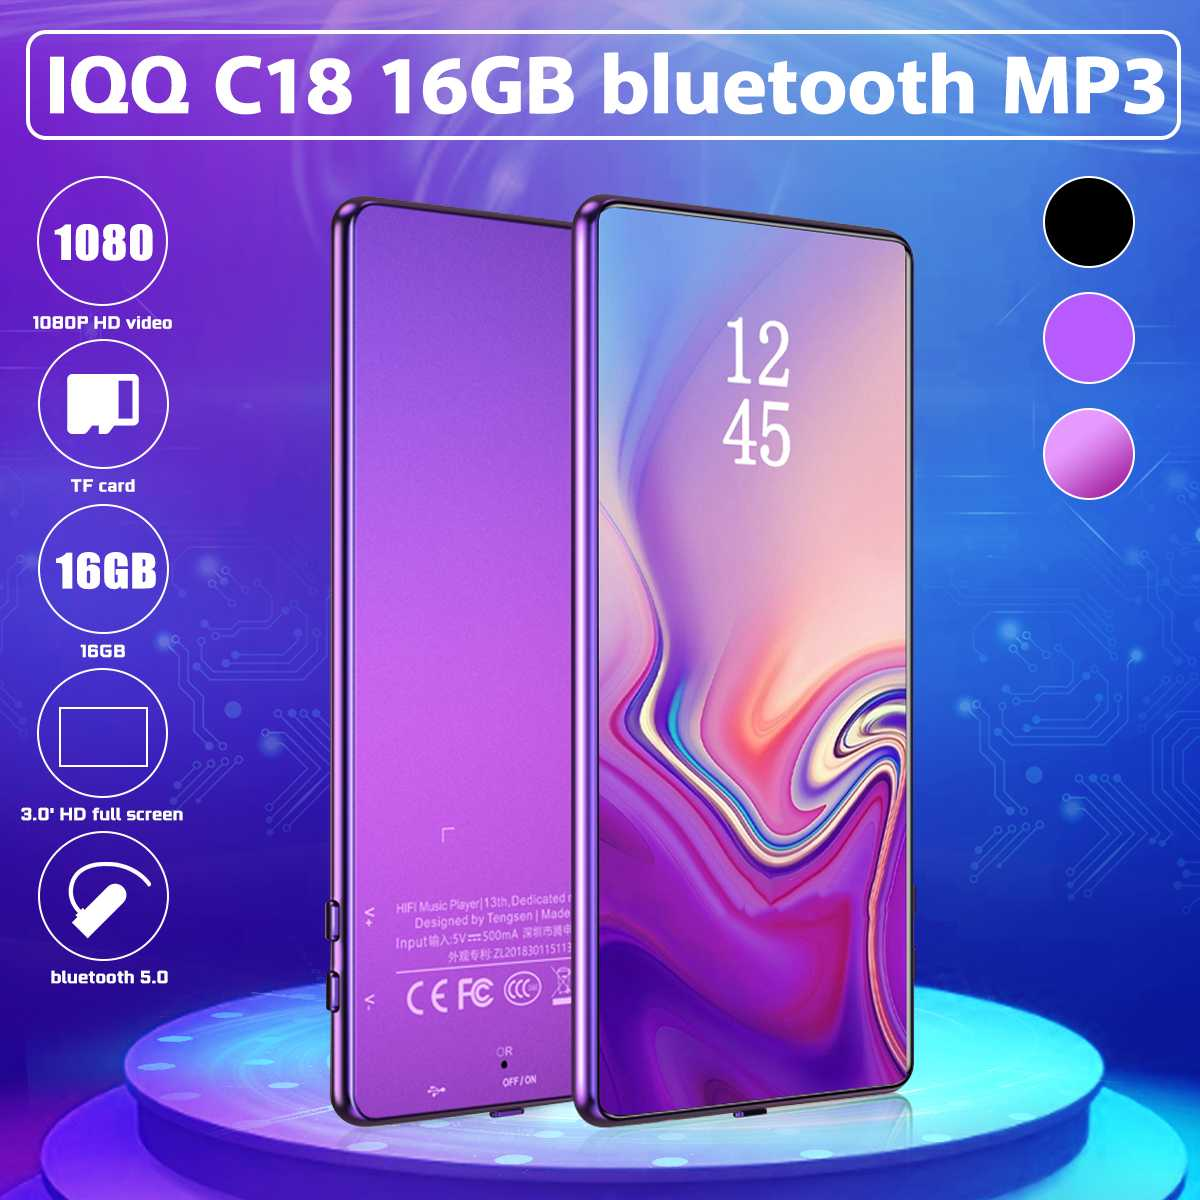 IQQ C18 HIFI <font><b>MP3</b></font> <font><b>Player</b></font> 16G 1080P HD <font><b>Video</b></font> Losslessr bluetooth 5,0 <font><b>Player</b></font> FM E-buch Musik Aufnahme Walkman image